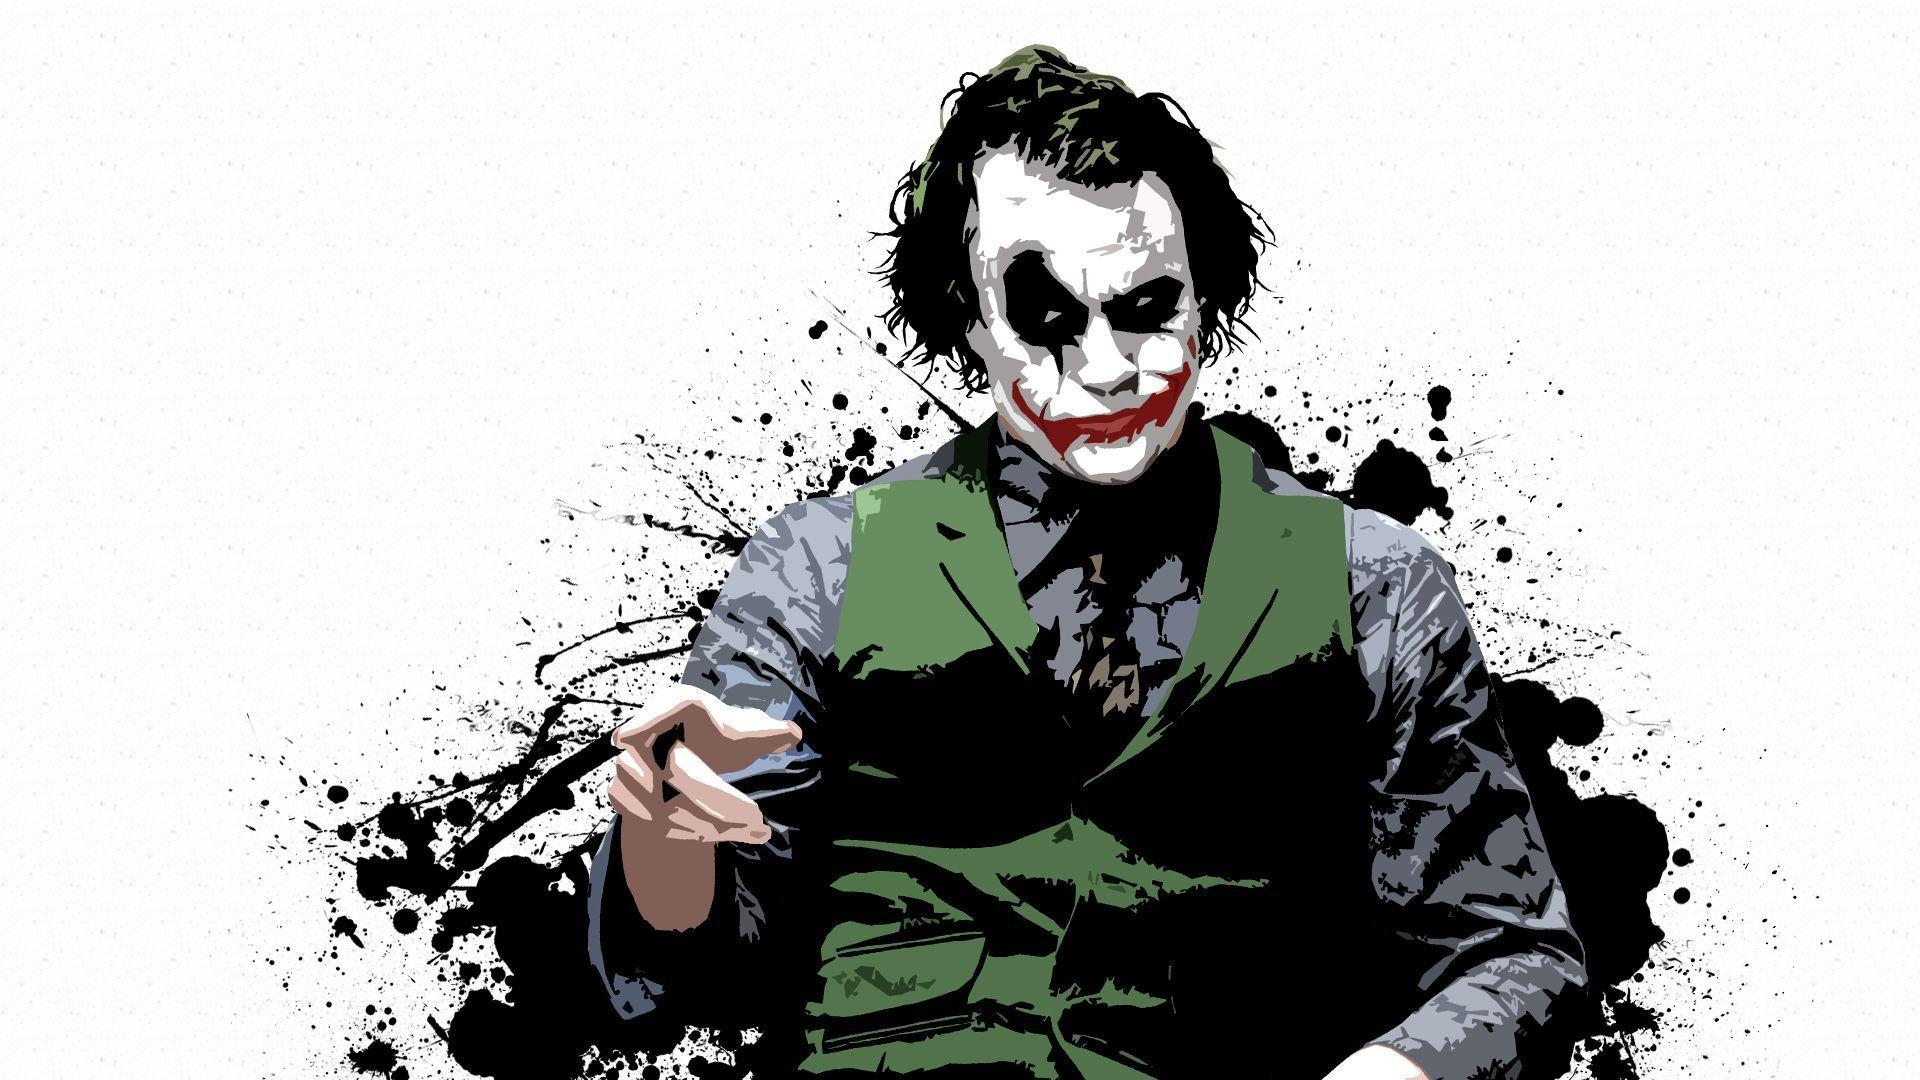 Wallpapers For Batman And Joker Wallpaper 1920x1080